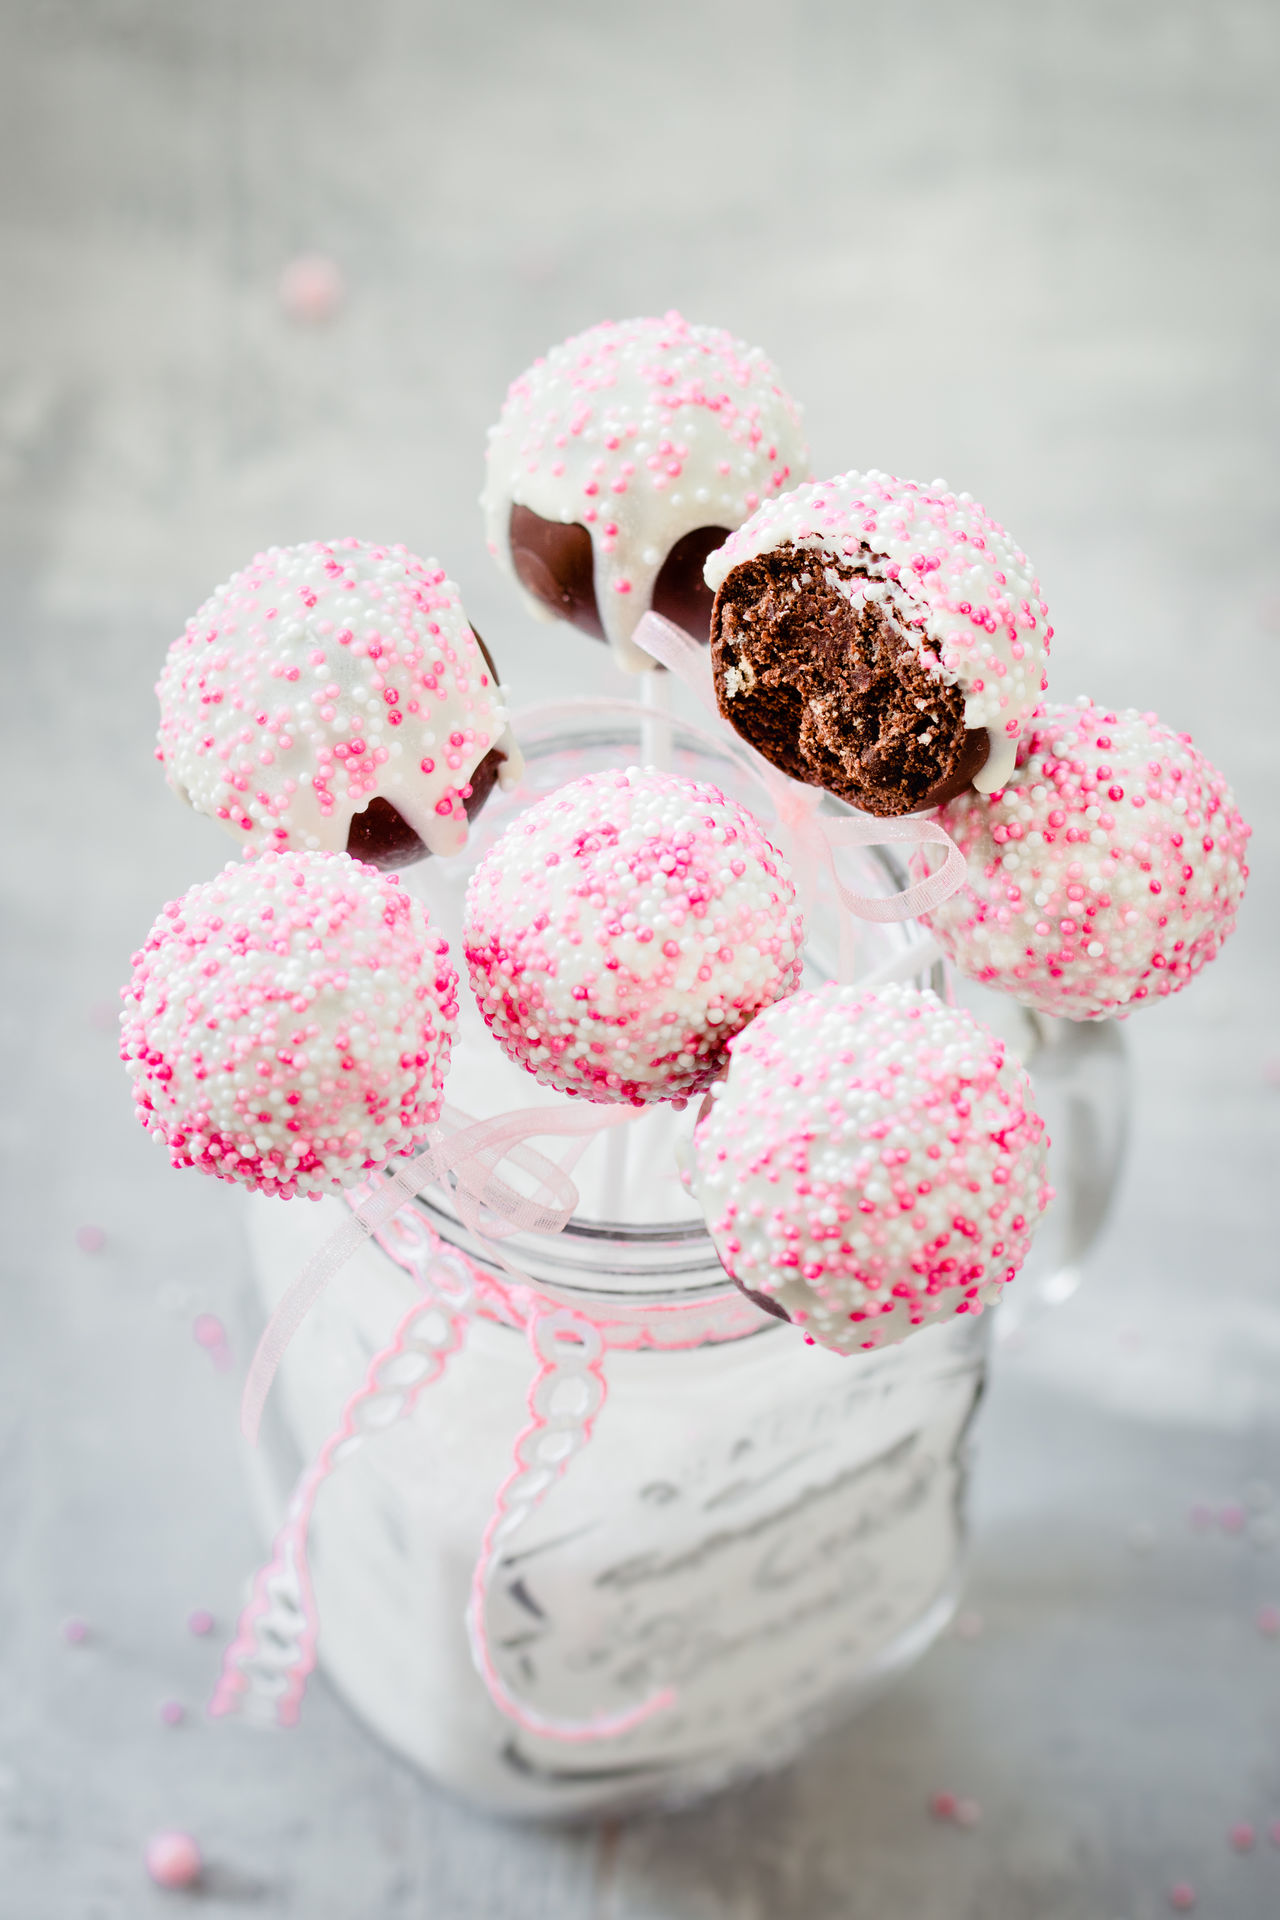 Baby Birthday Cake Cake Pops Chocolate Decorated Dessert Food And Drink Girl Lollipop No People Pink Color Served Sprinkles Sugar Sweet Sweet Food Table Weddi9ng White